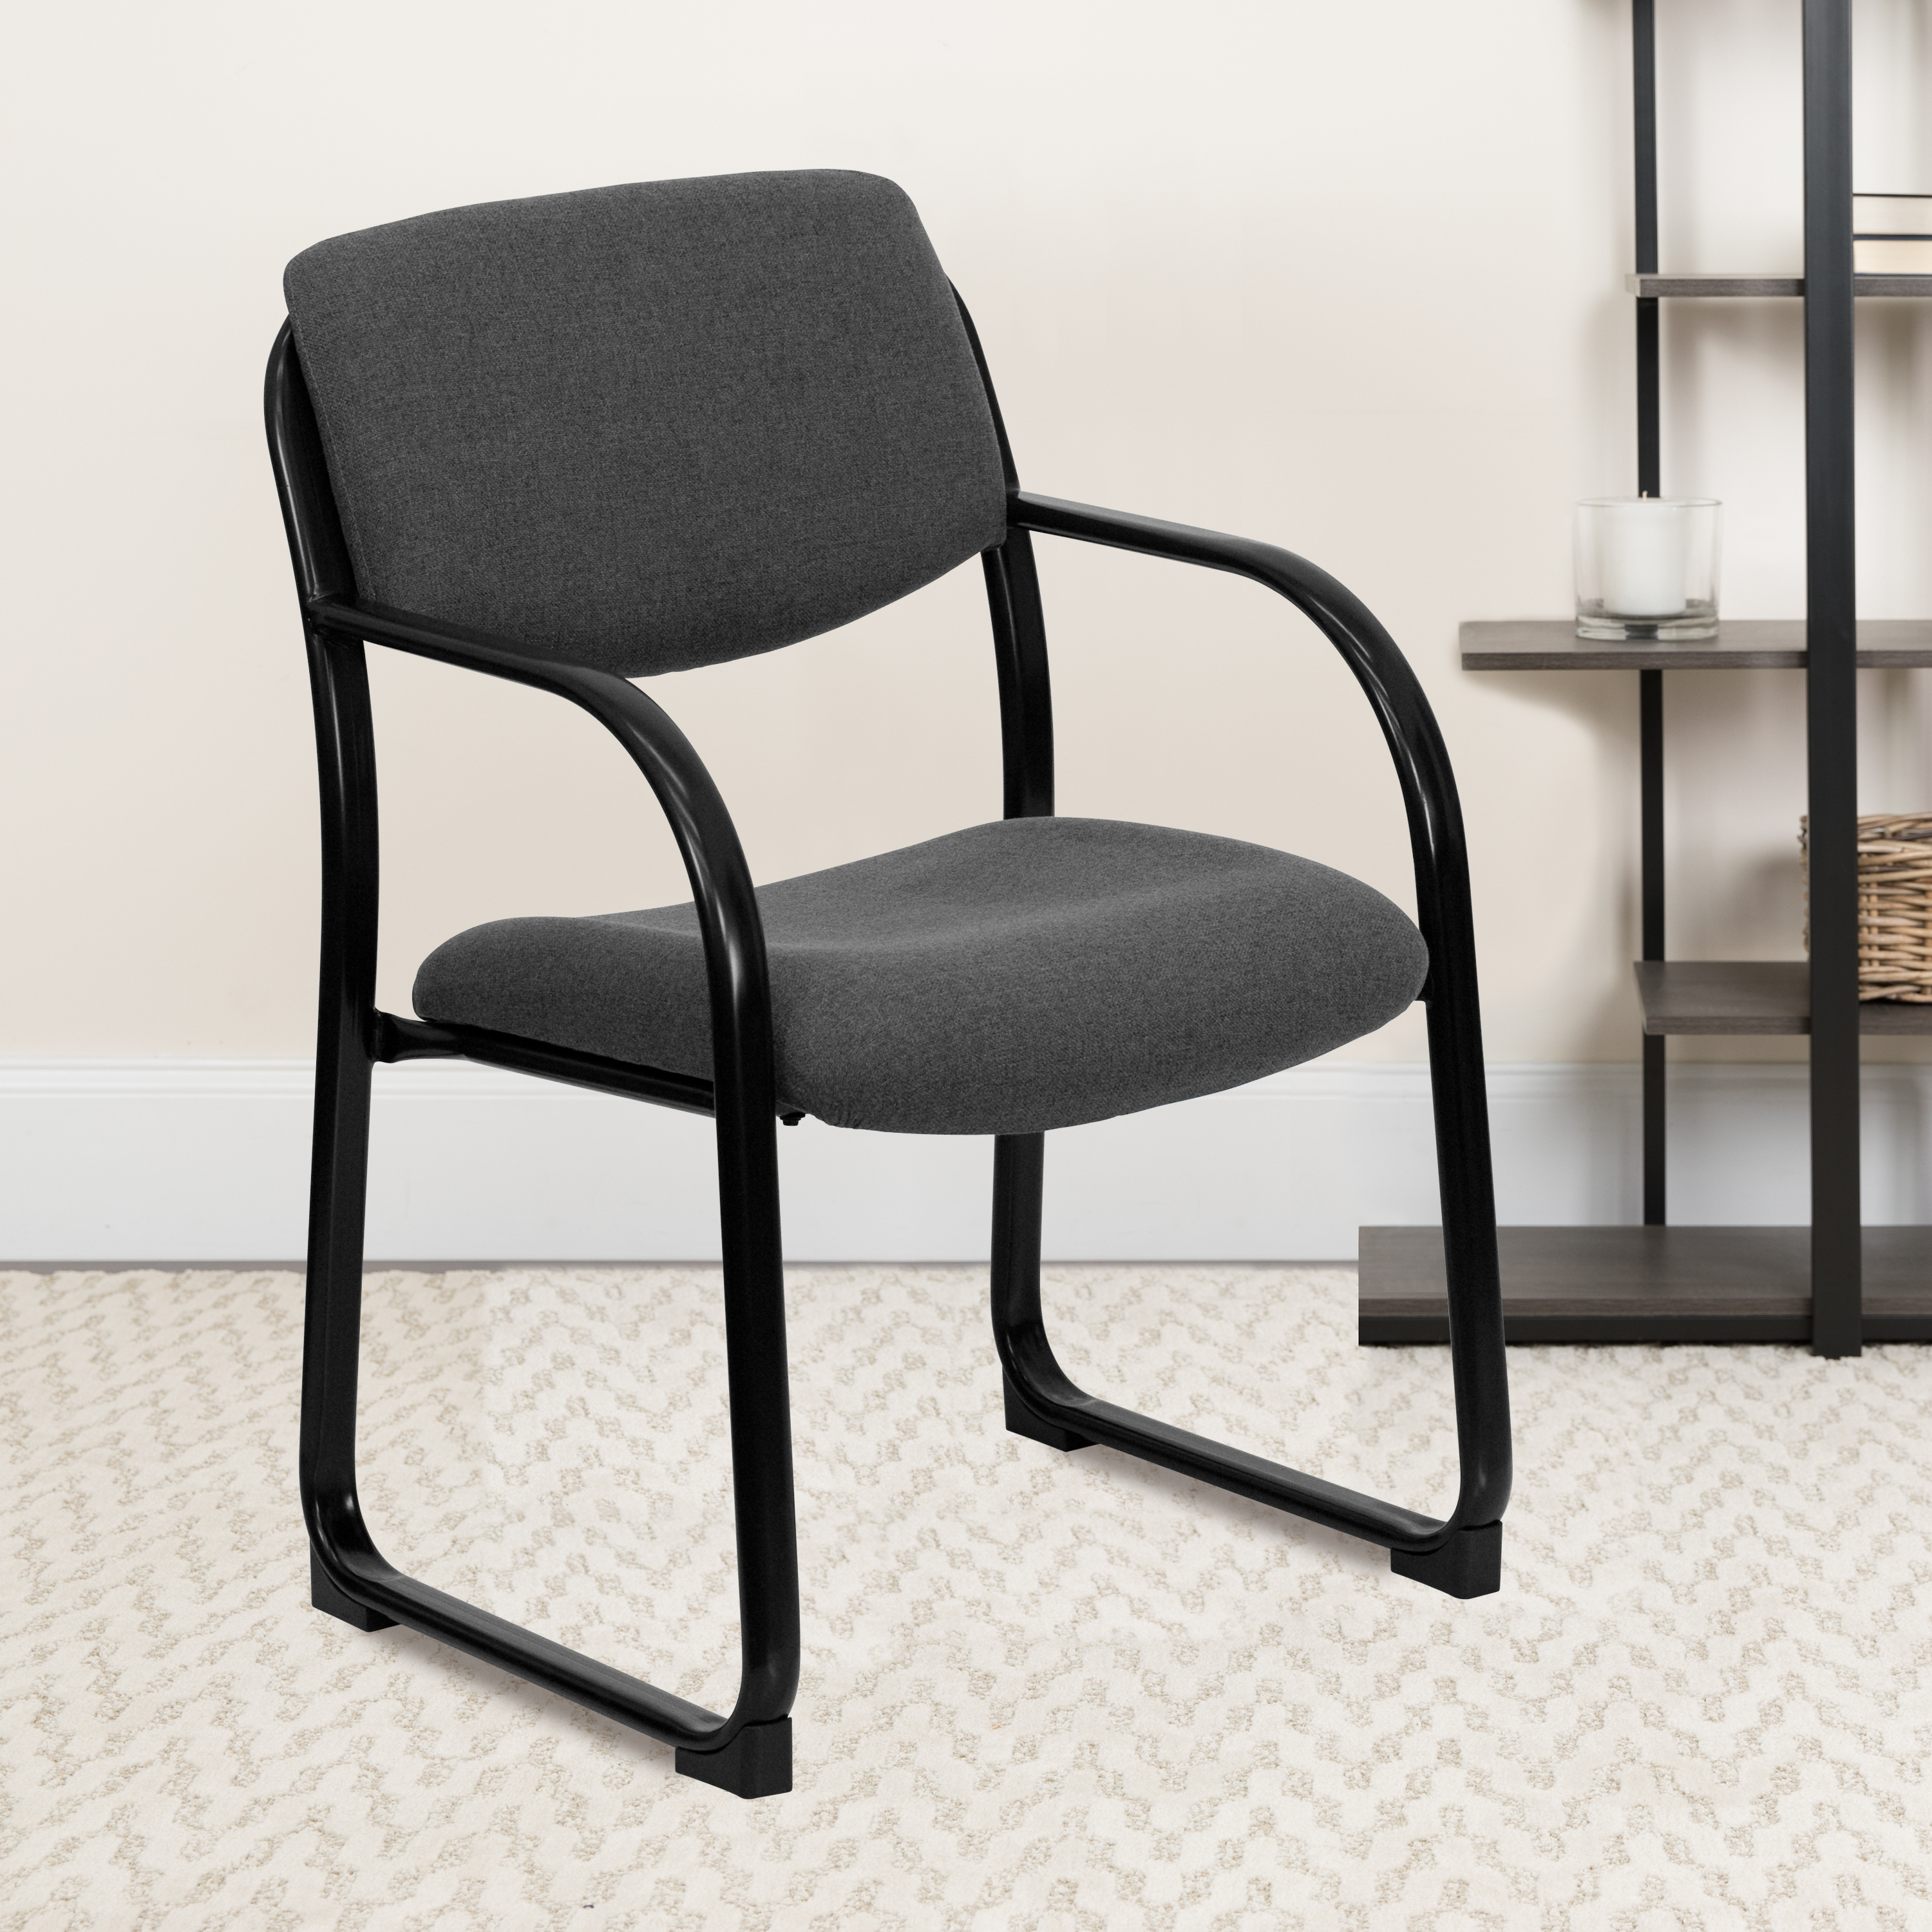 Fabric Upholstered Executive Guest and Reception Chair, Waiting Room Chair  - Walmart.com